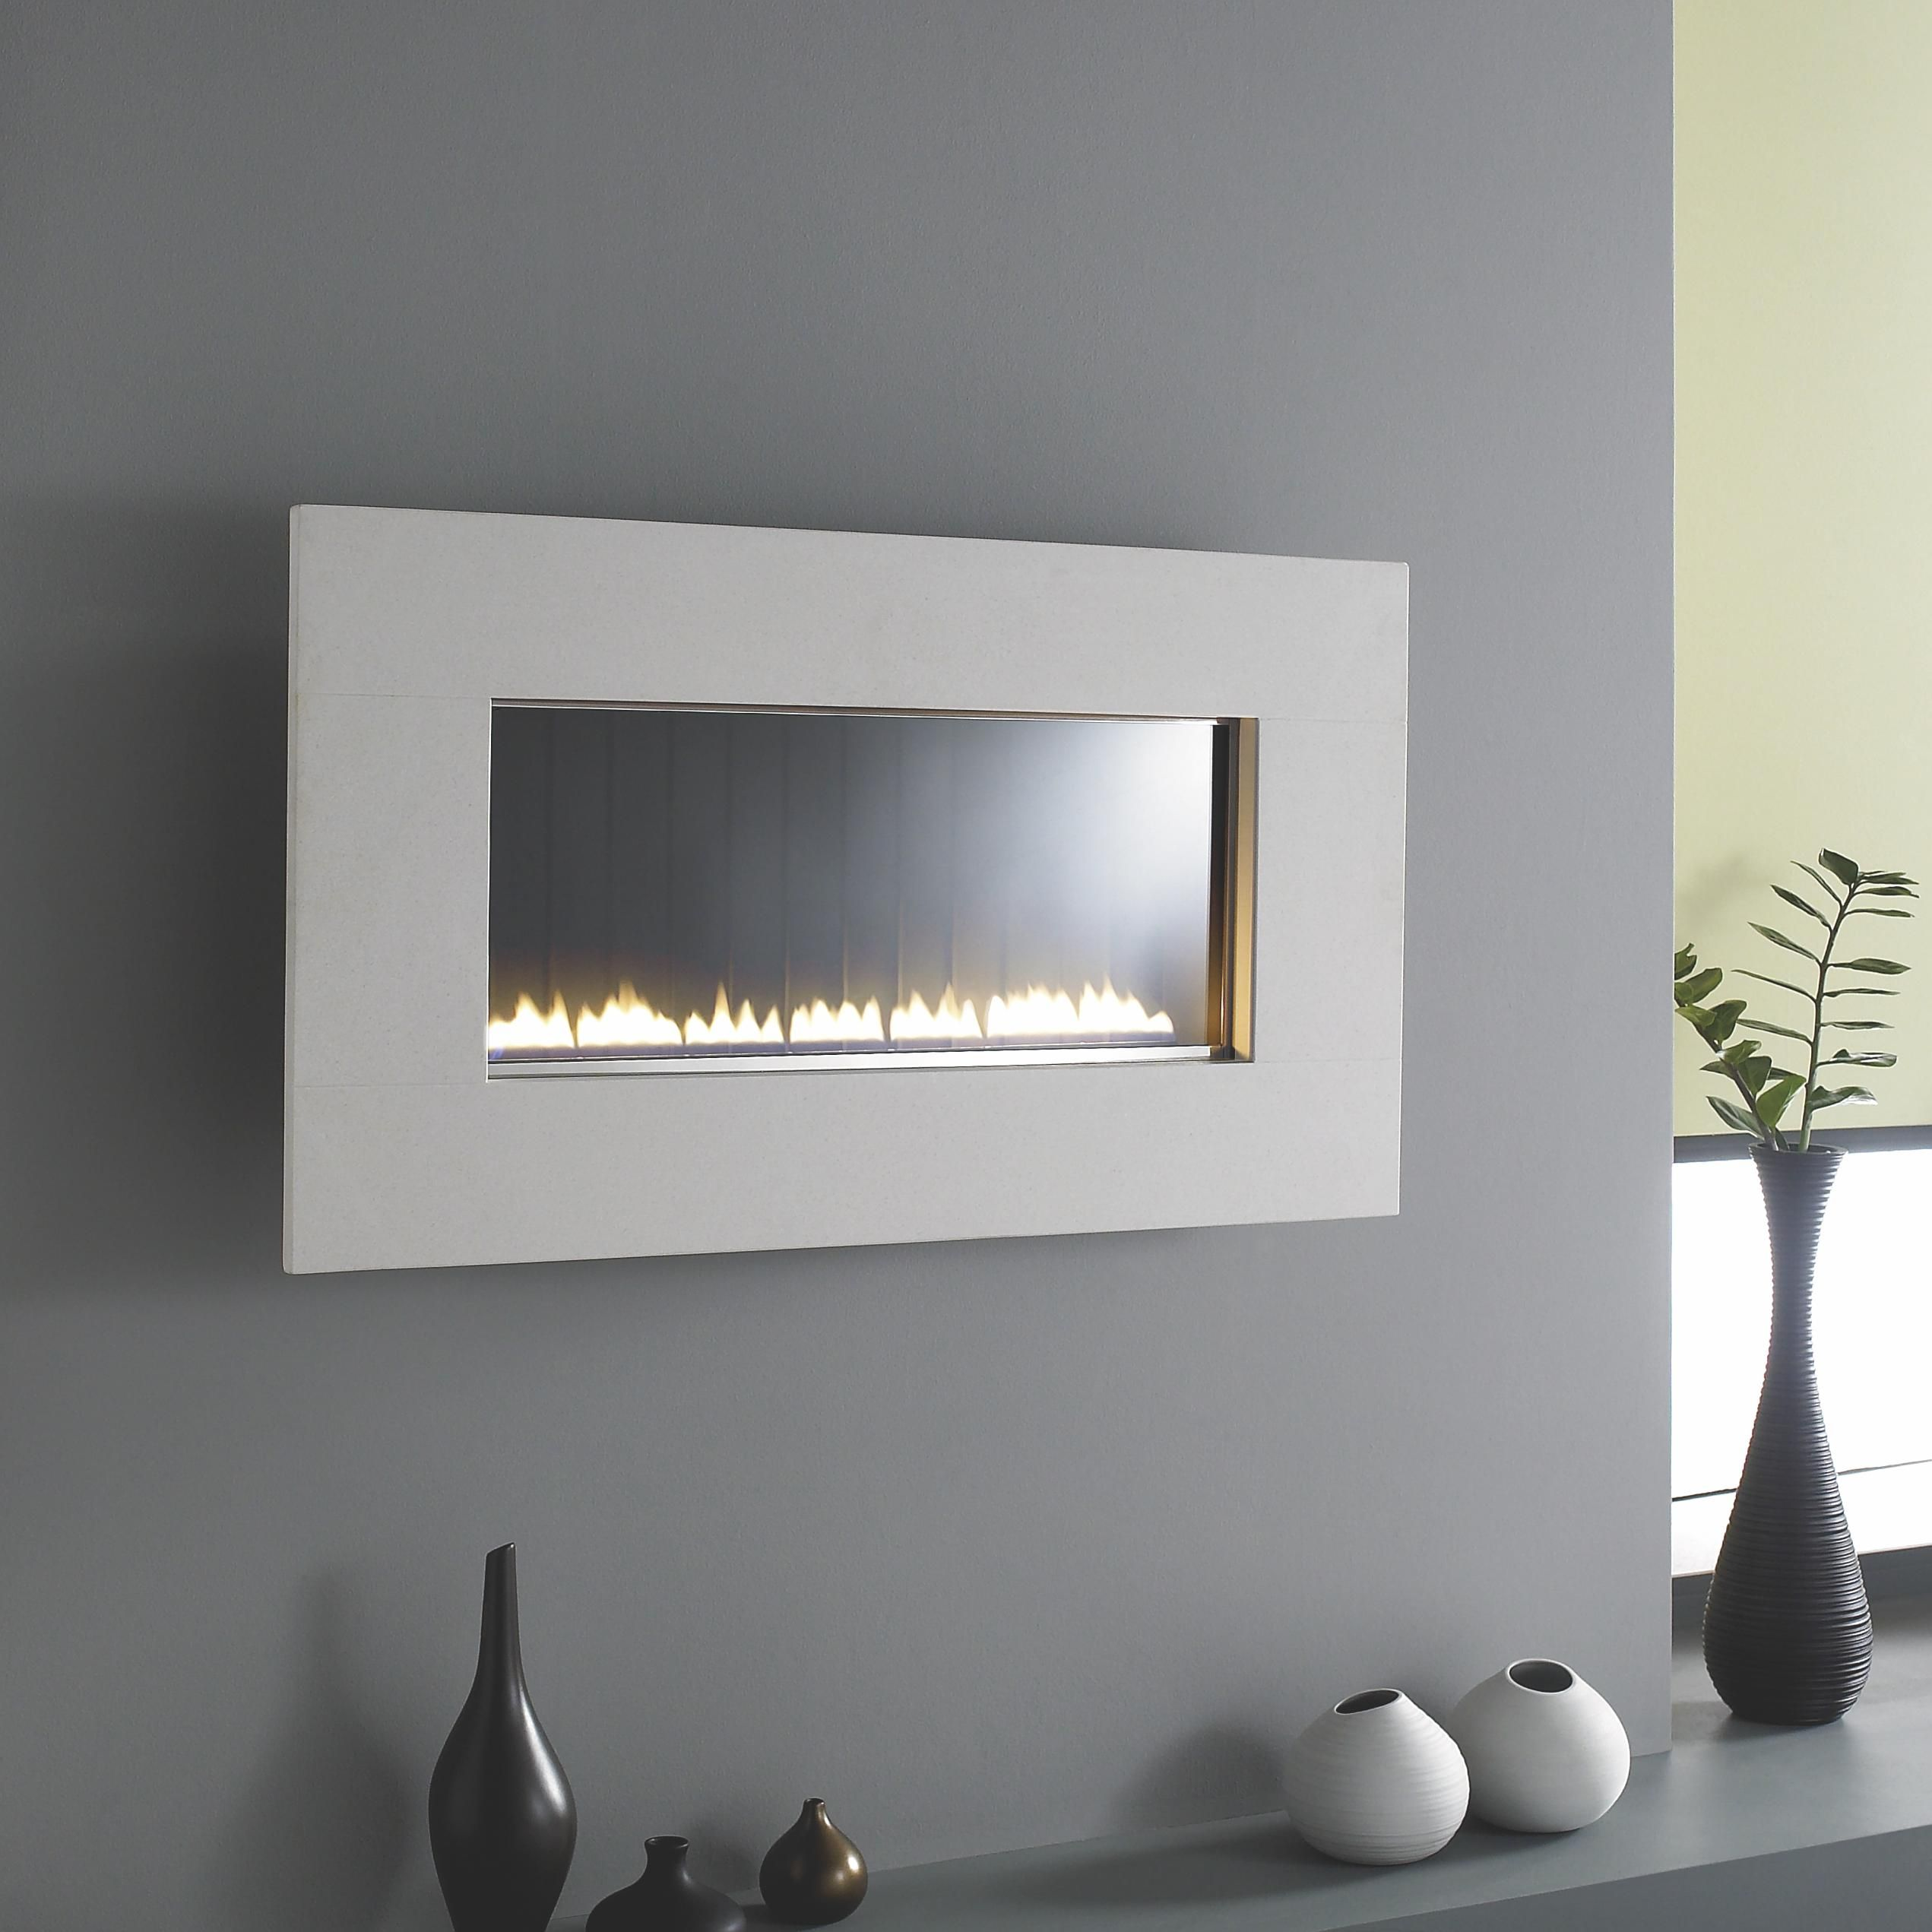 grand travetine flueless gas fire wall hung travertine in the